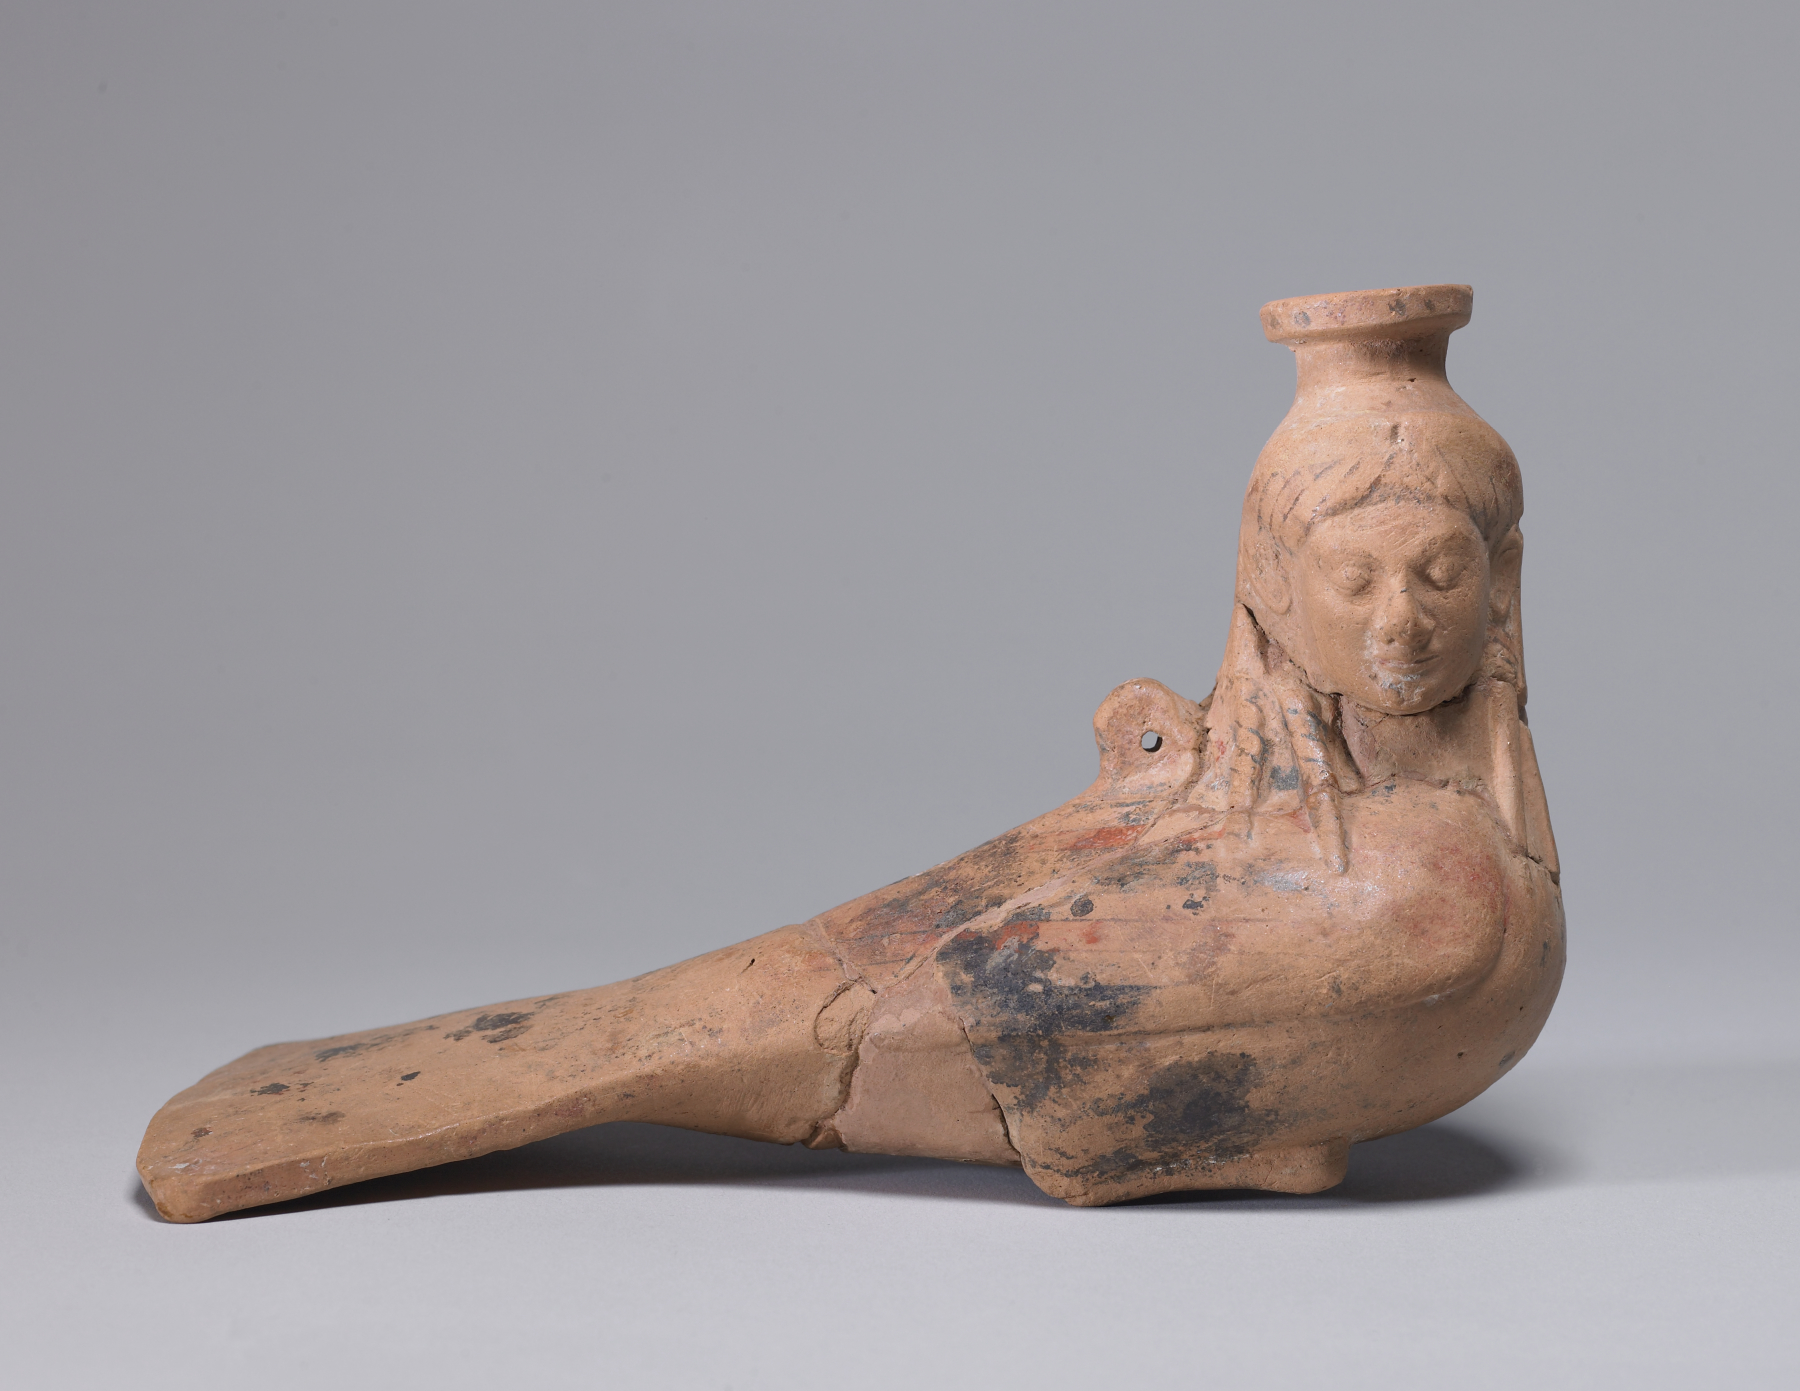 This East Greek type of terracotta perfume vase takes the form of a siren, a mythical creature with a woman's head and a bird's body, known for her connections to the underworld and for her mesmerizing power over men. A pierced lug for hanging is attached to her back. circa 540 BC (Archaic) Currently in the collection of The Walters Art Museum, Baltimore, Maryland (purchased during the sale of Joseph Brummer Collection, pt. III, Parke-Bernet Galleries, Inc., New York. June 8-9, 1949.